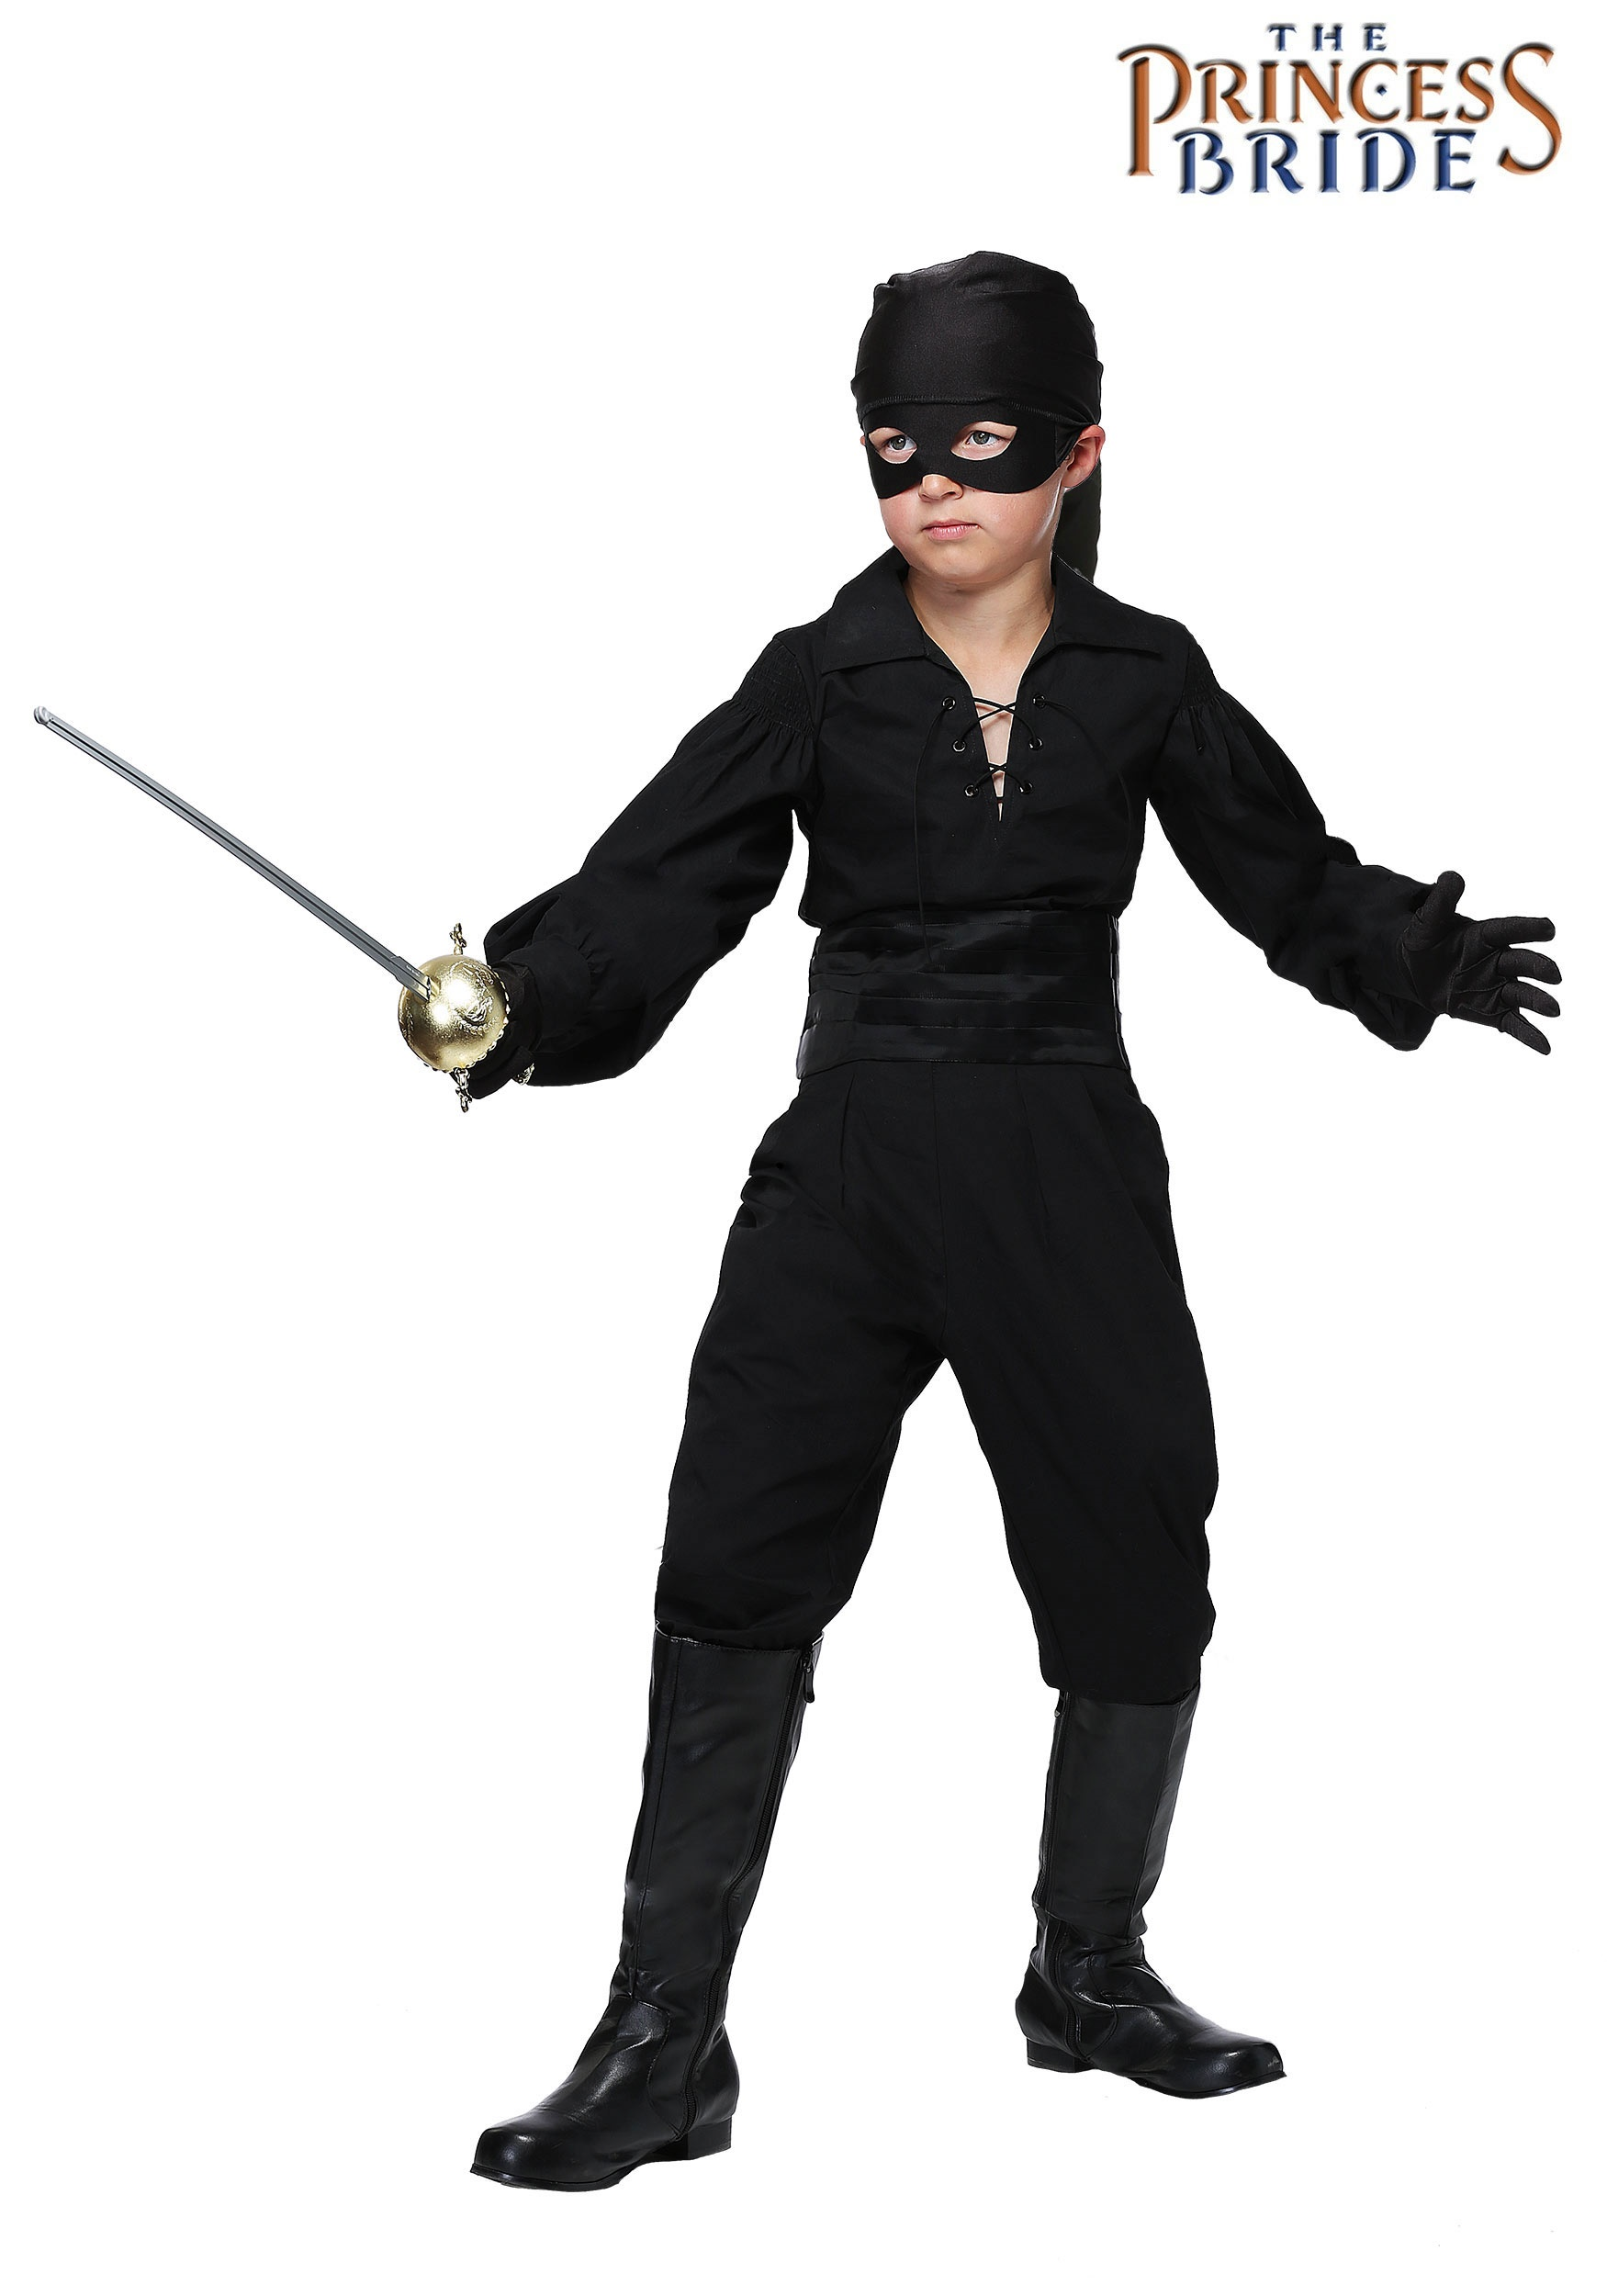 THE PRINCESS BRIDE WESTLEY BOYS COSTUME dread pirate roberts boy child kids outfit